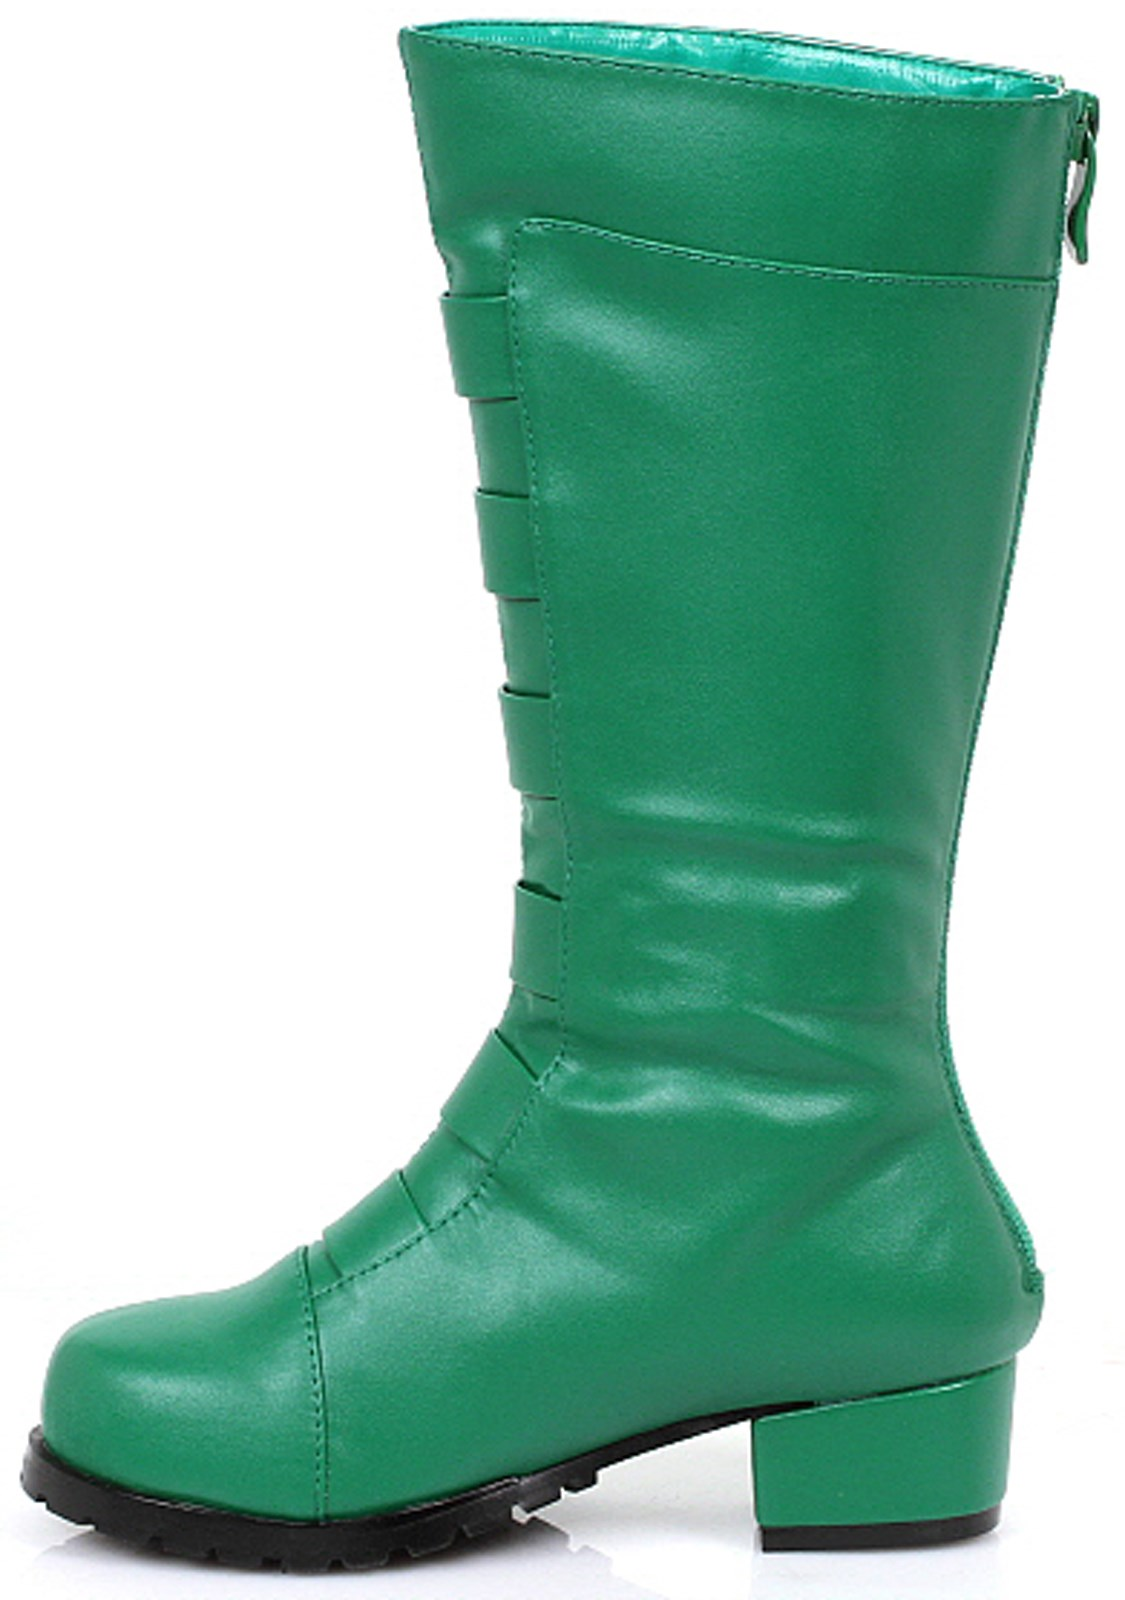 Boys Green Costume Boots